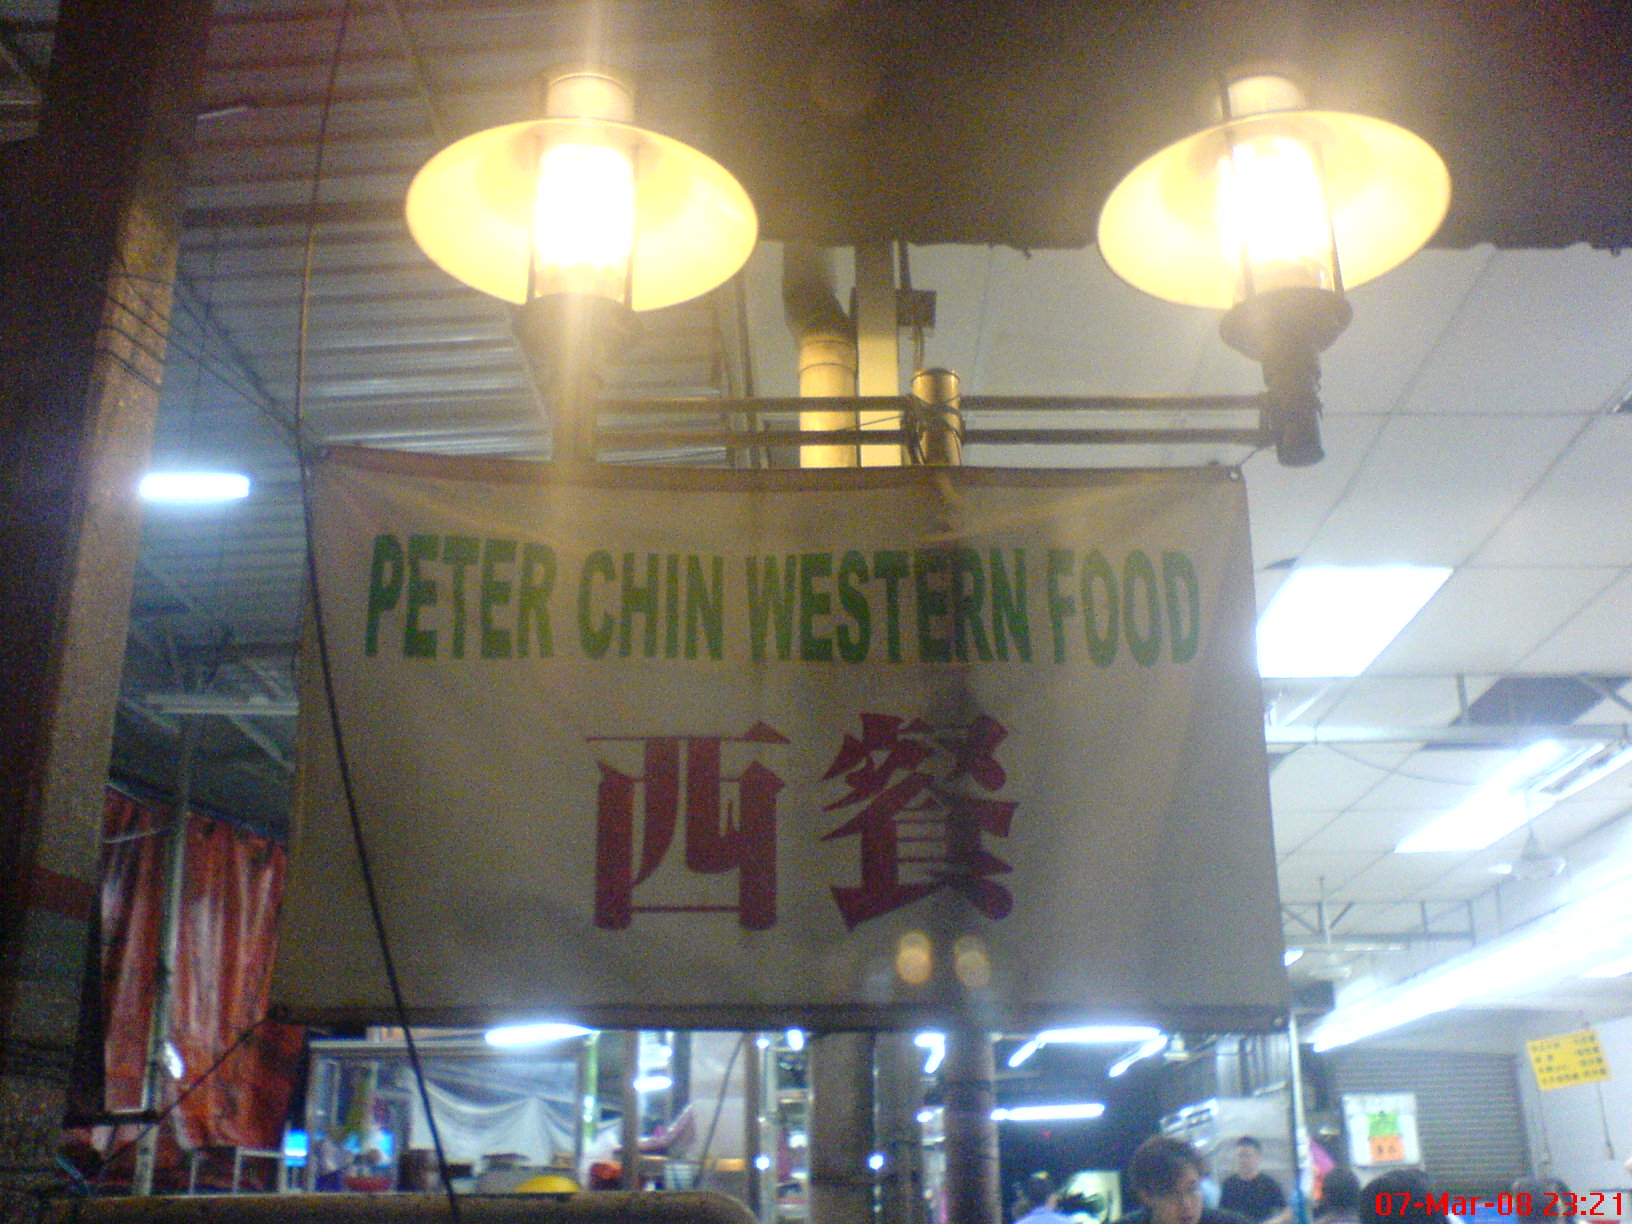 peter chin western food